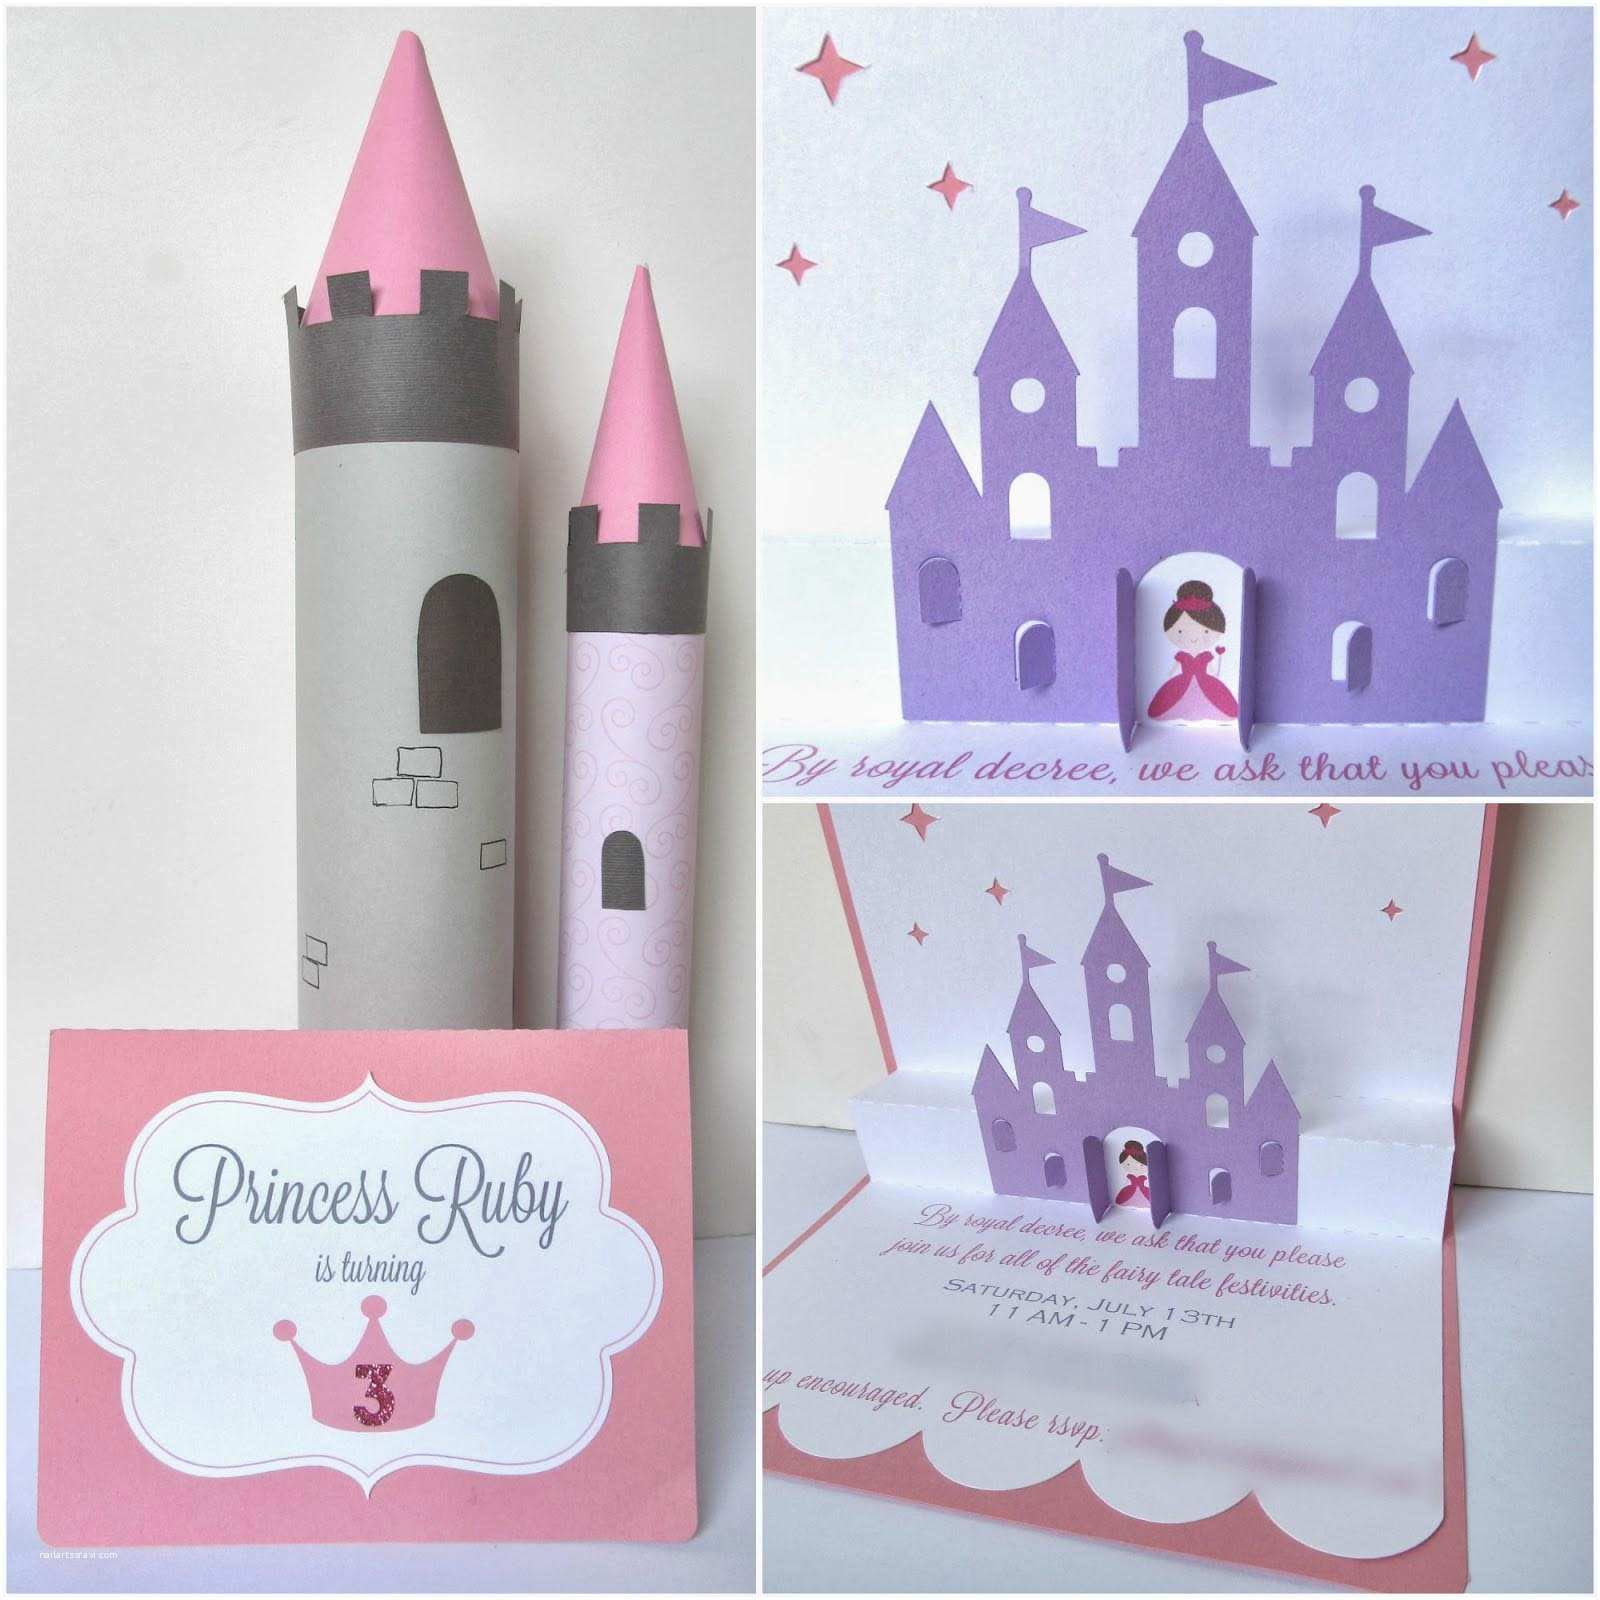 Homemade Birthday Invitations Homemade Princess Party Invitations